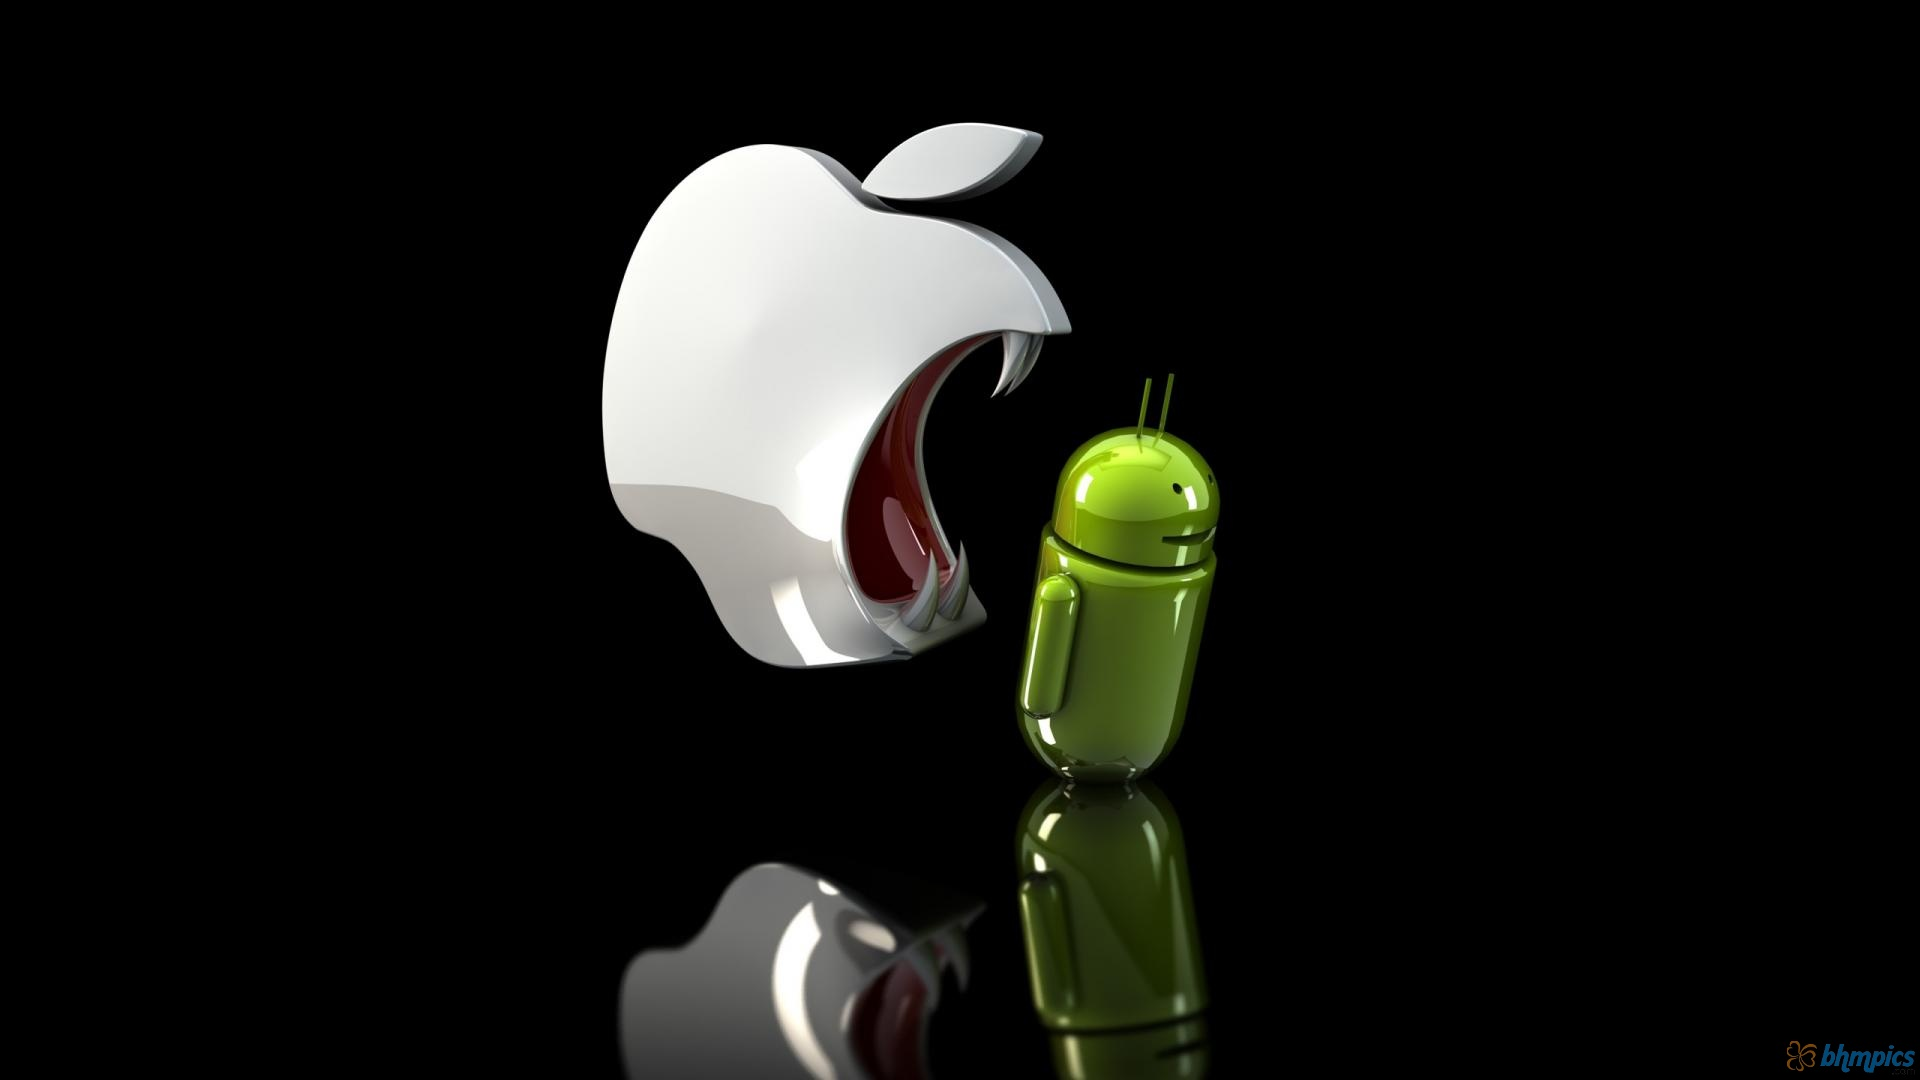 Comment les mobiles Android favorisent les ventes d'iPhone ?